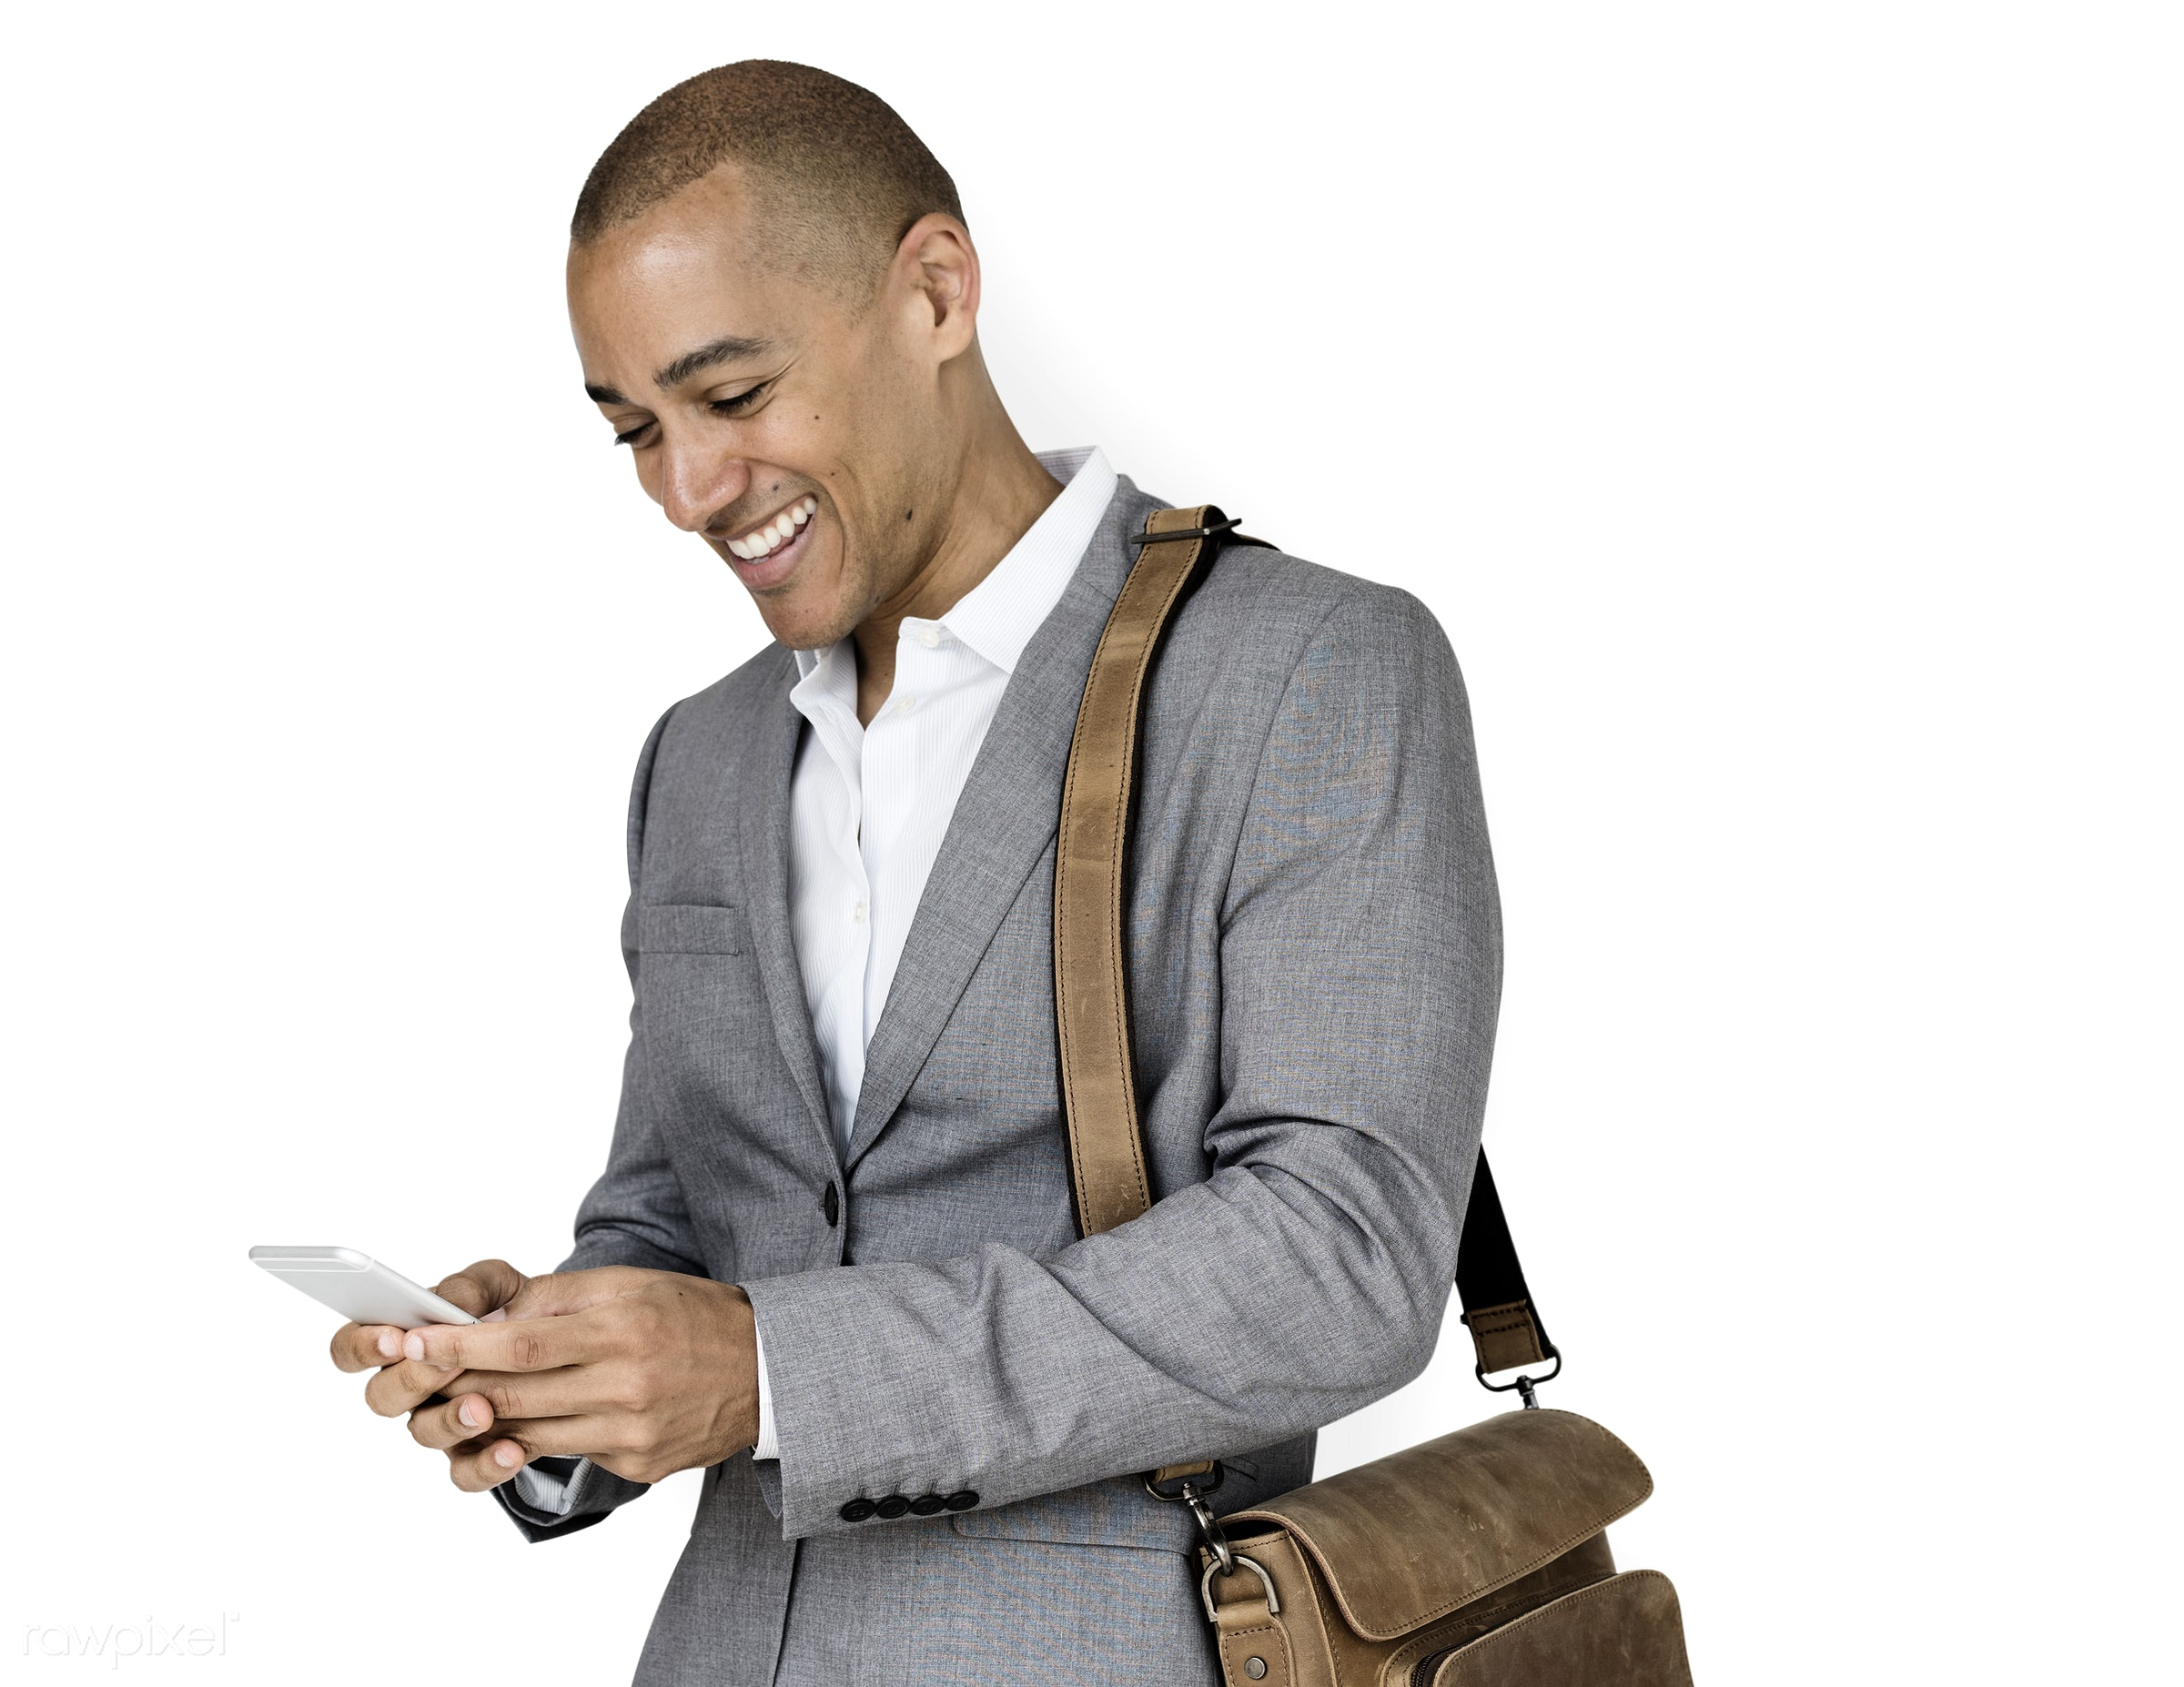 expression, studio, person, phone, messenger bag, isolated on white, people, business, happy, suits, smile, cheerful,...